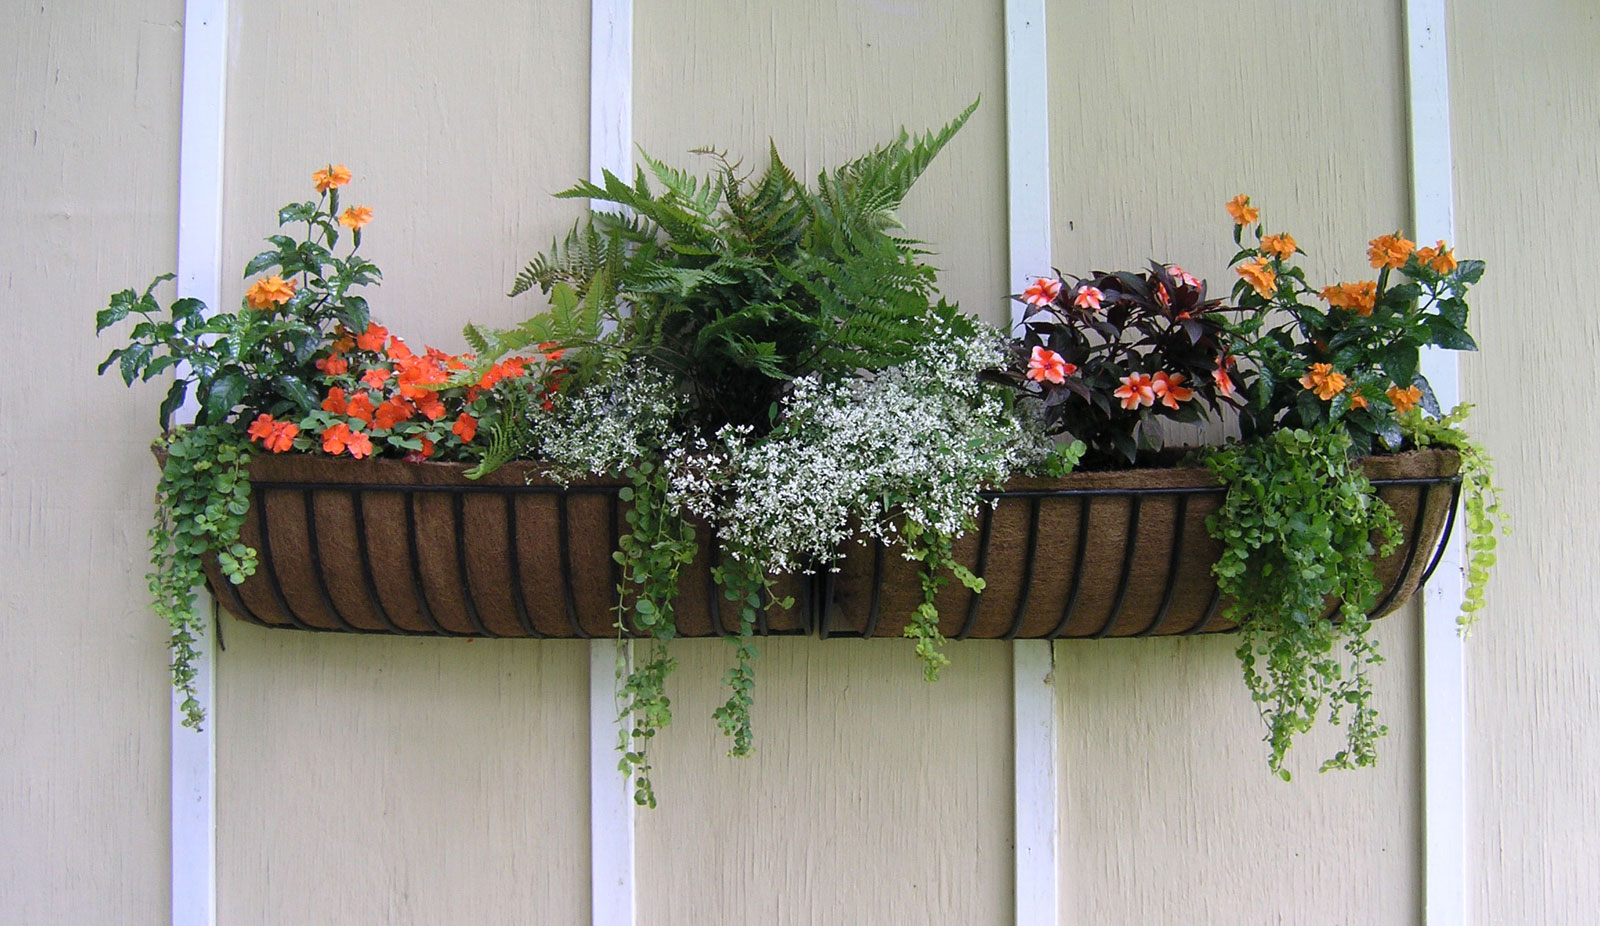 Fastenings for balcony boxes for flowers. Their types and proper arrangement